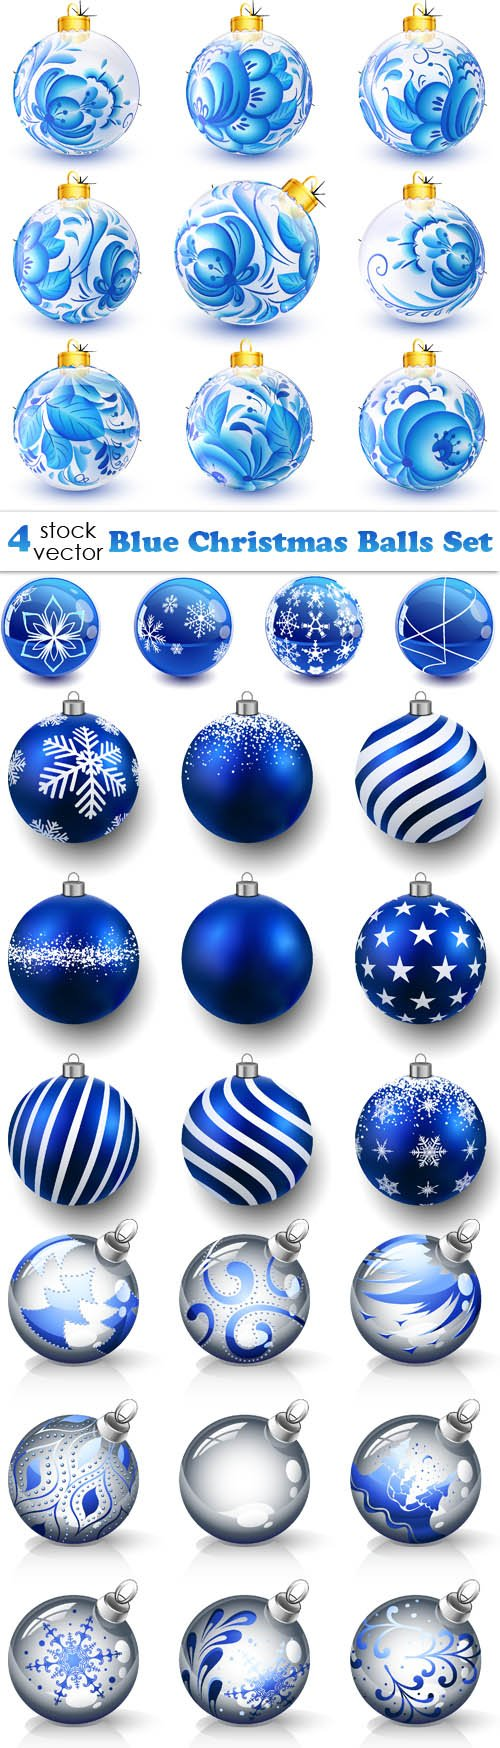 Vectors - Blue Christmas Balls Set